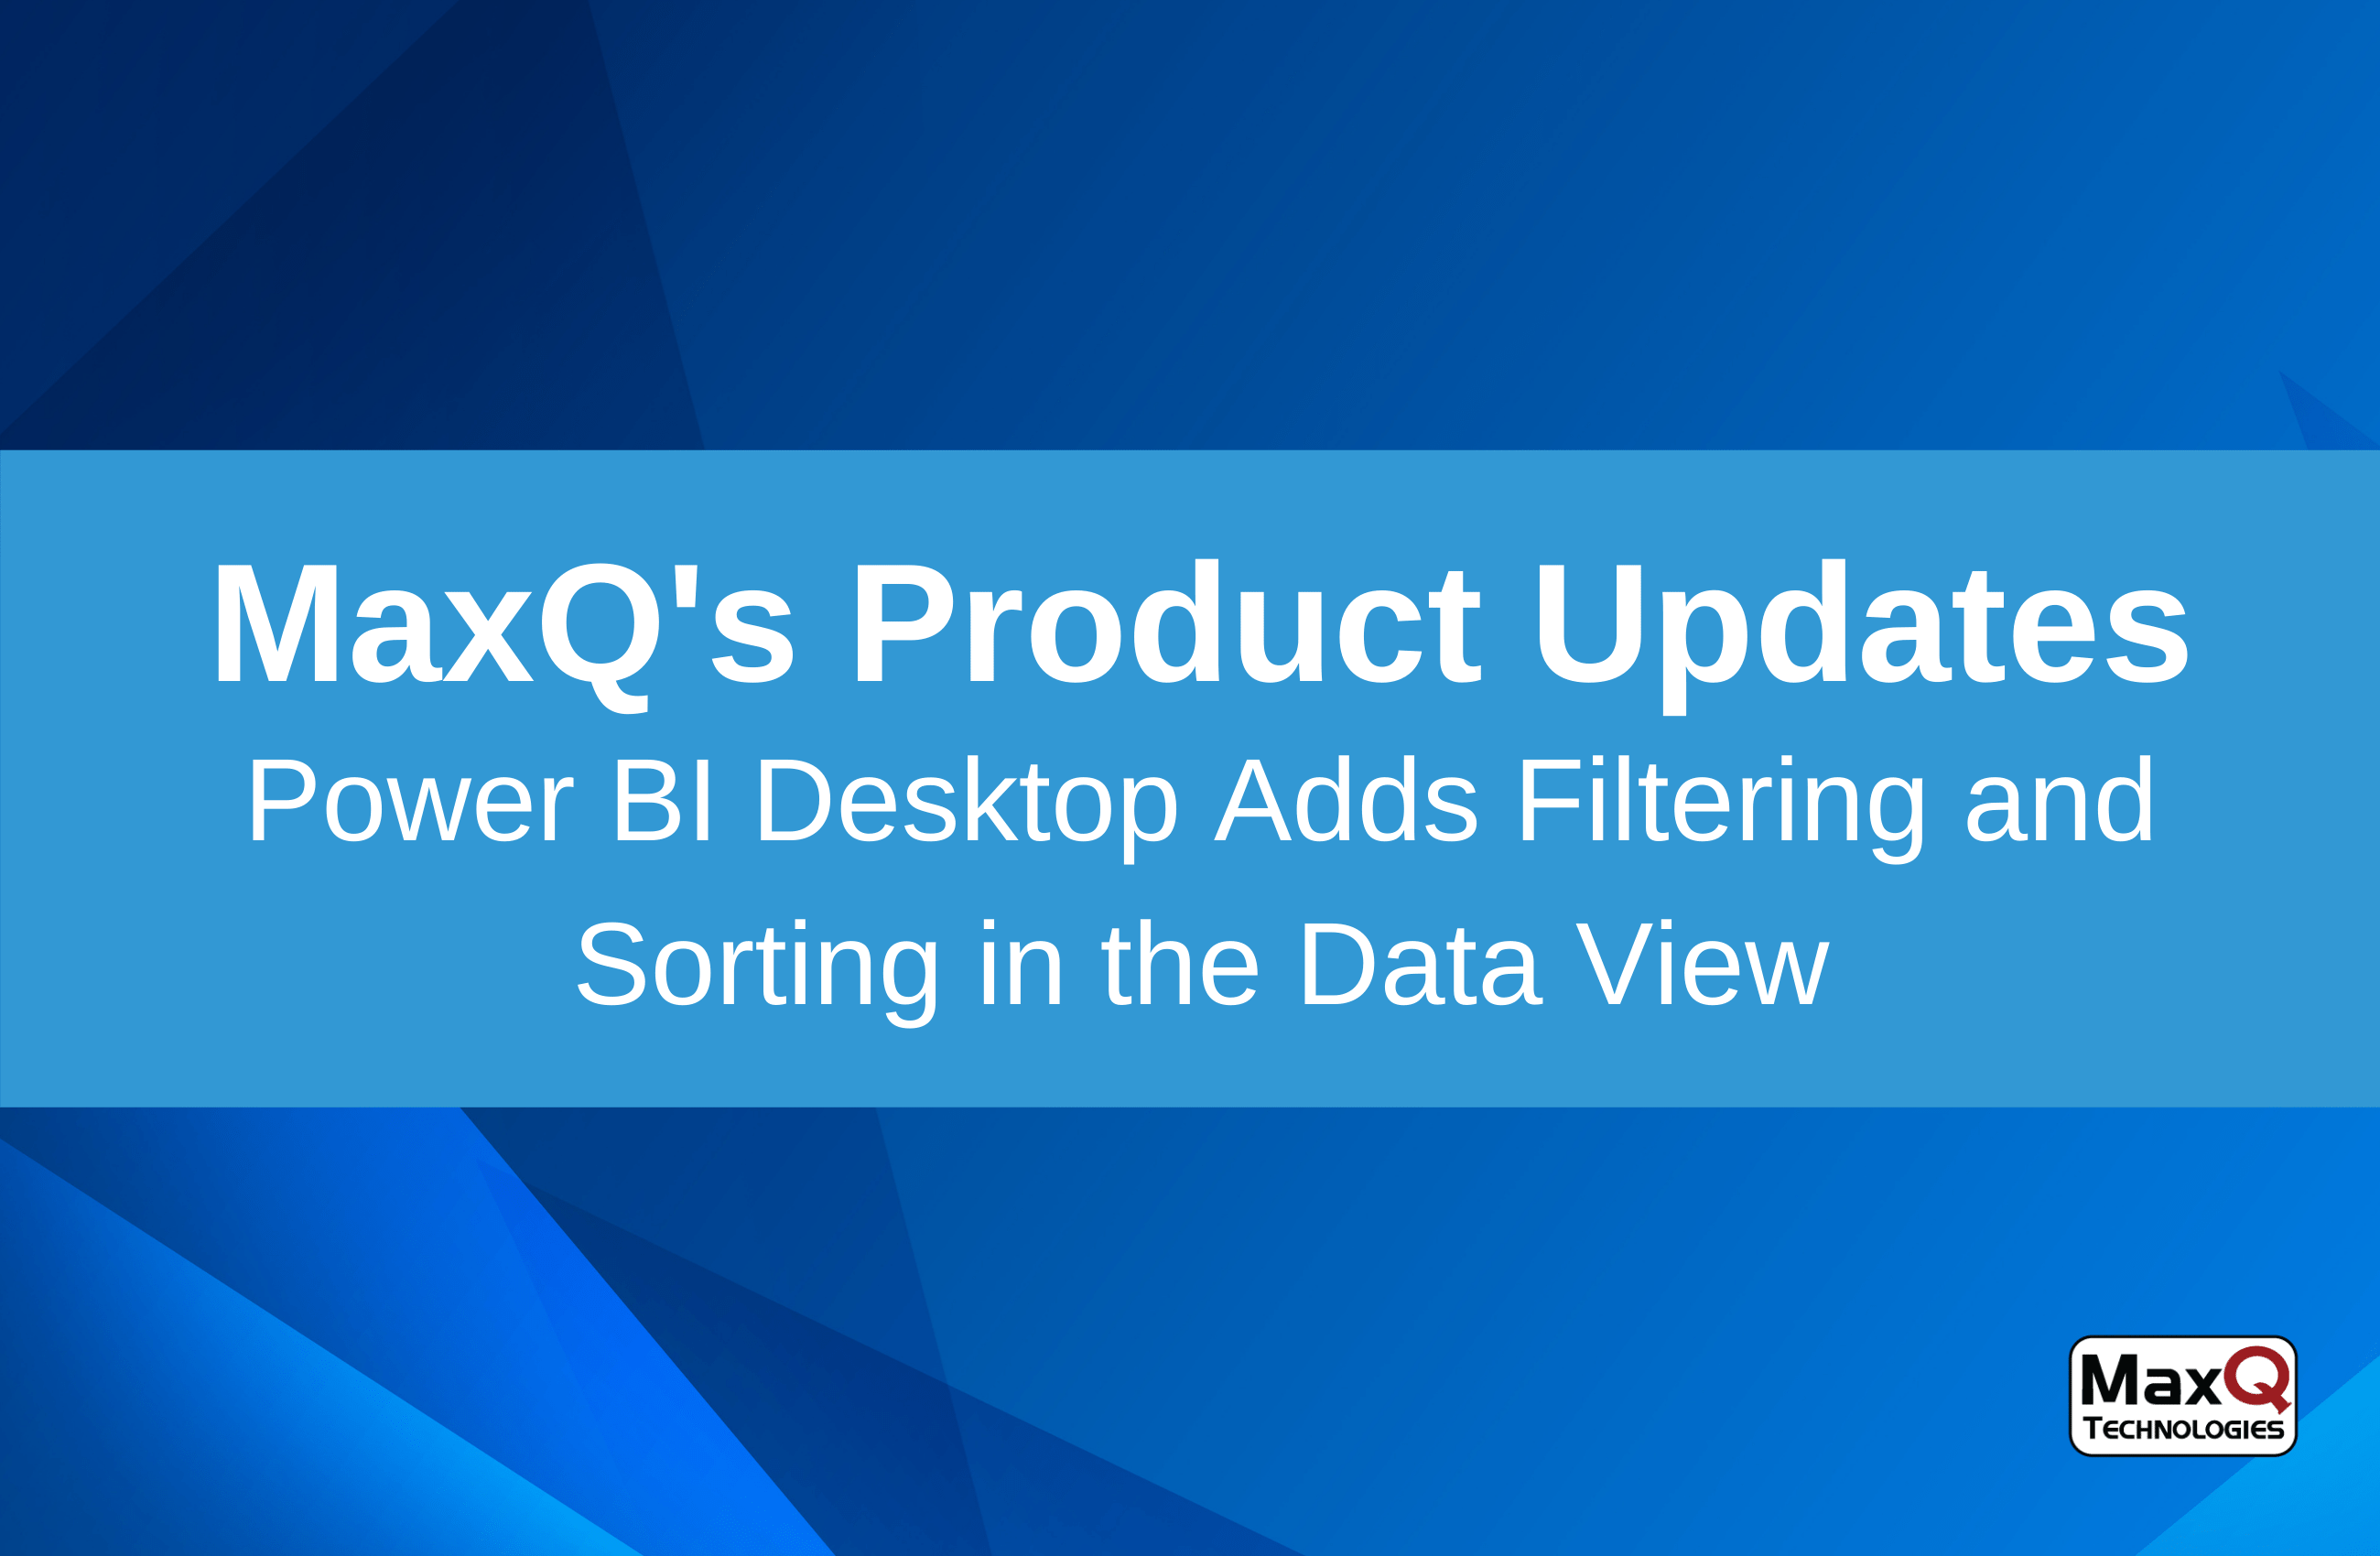 Power BI Desktop Adds Filtering and Sorting in the Data View – Finally!